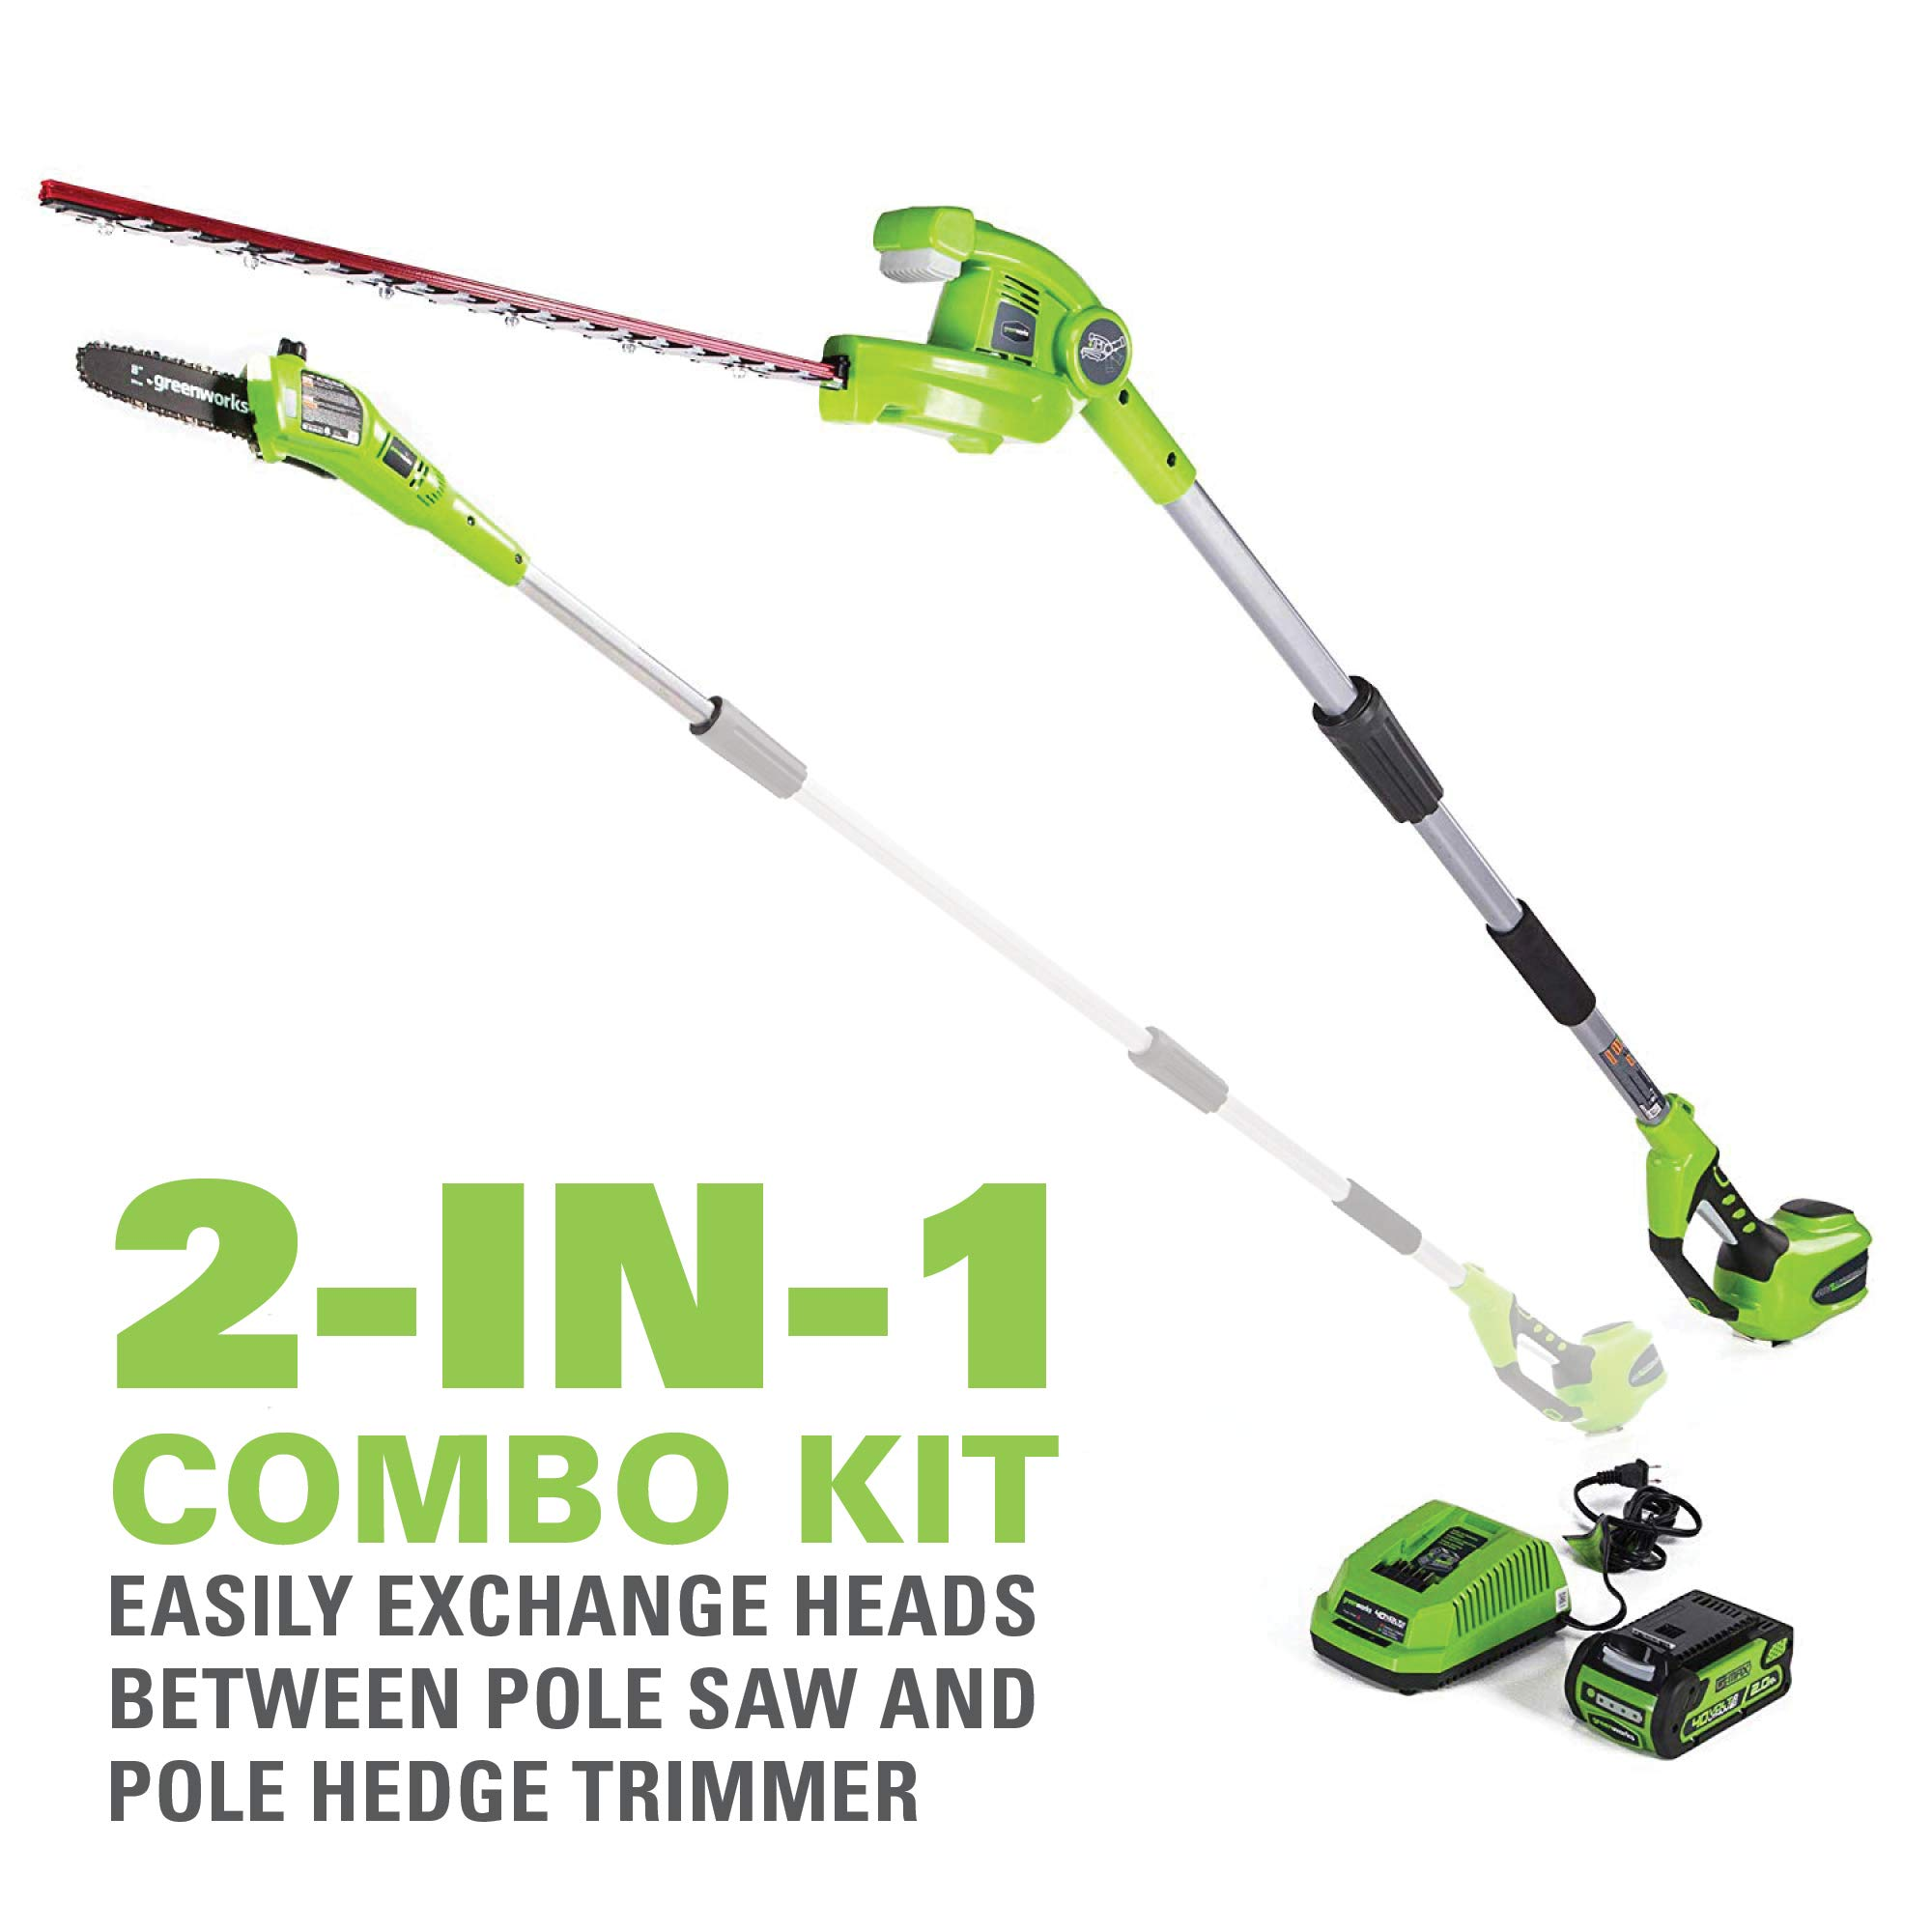 Greenworks 8 Inch 40V Cordless Pole Saw with Hedge Trimmer Attachment 2.0 AH Battery Included PSPH40B210 by Greenworks